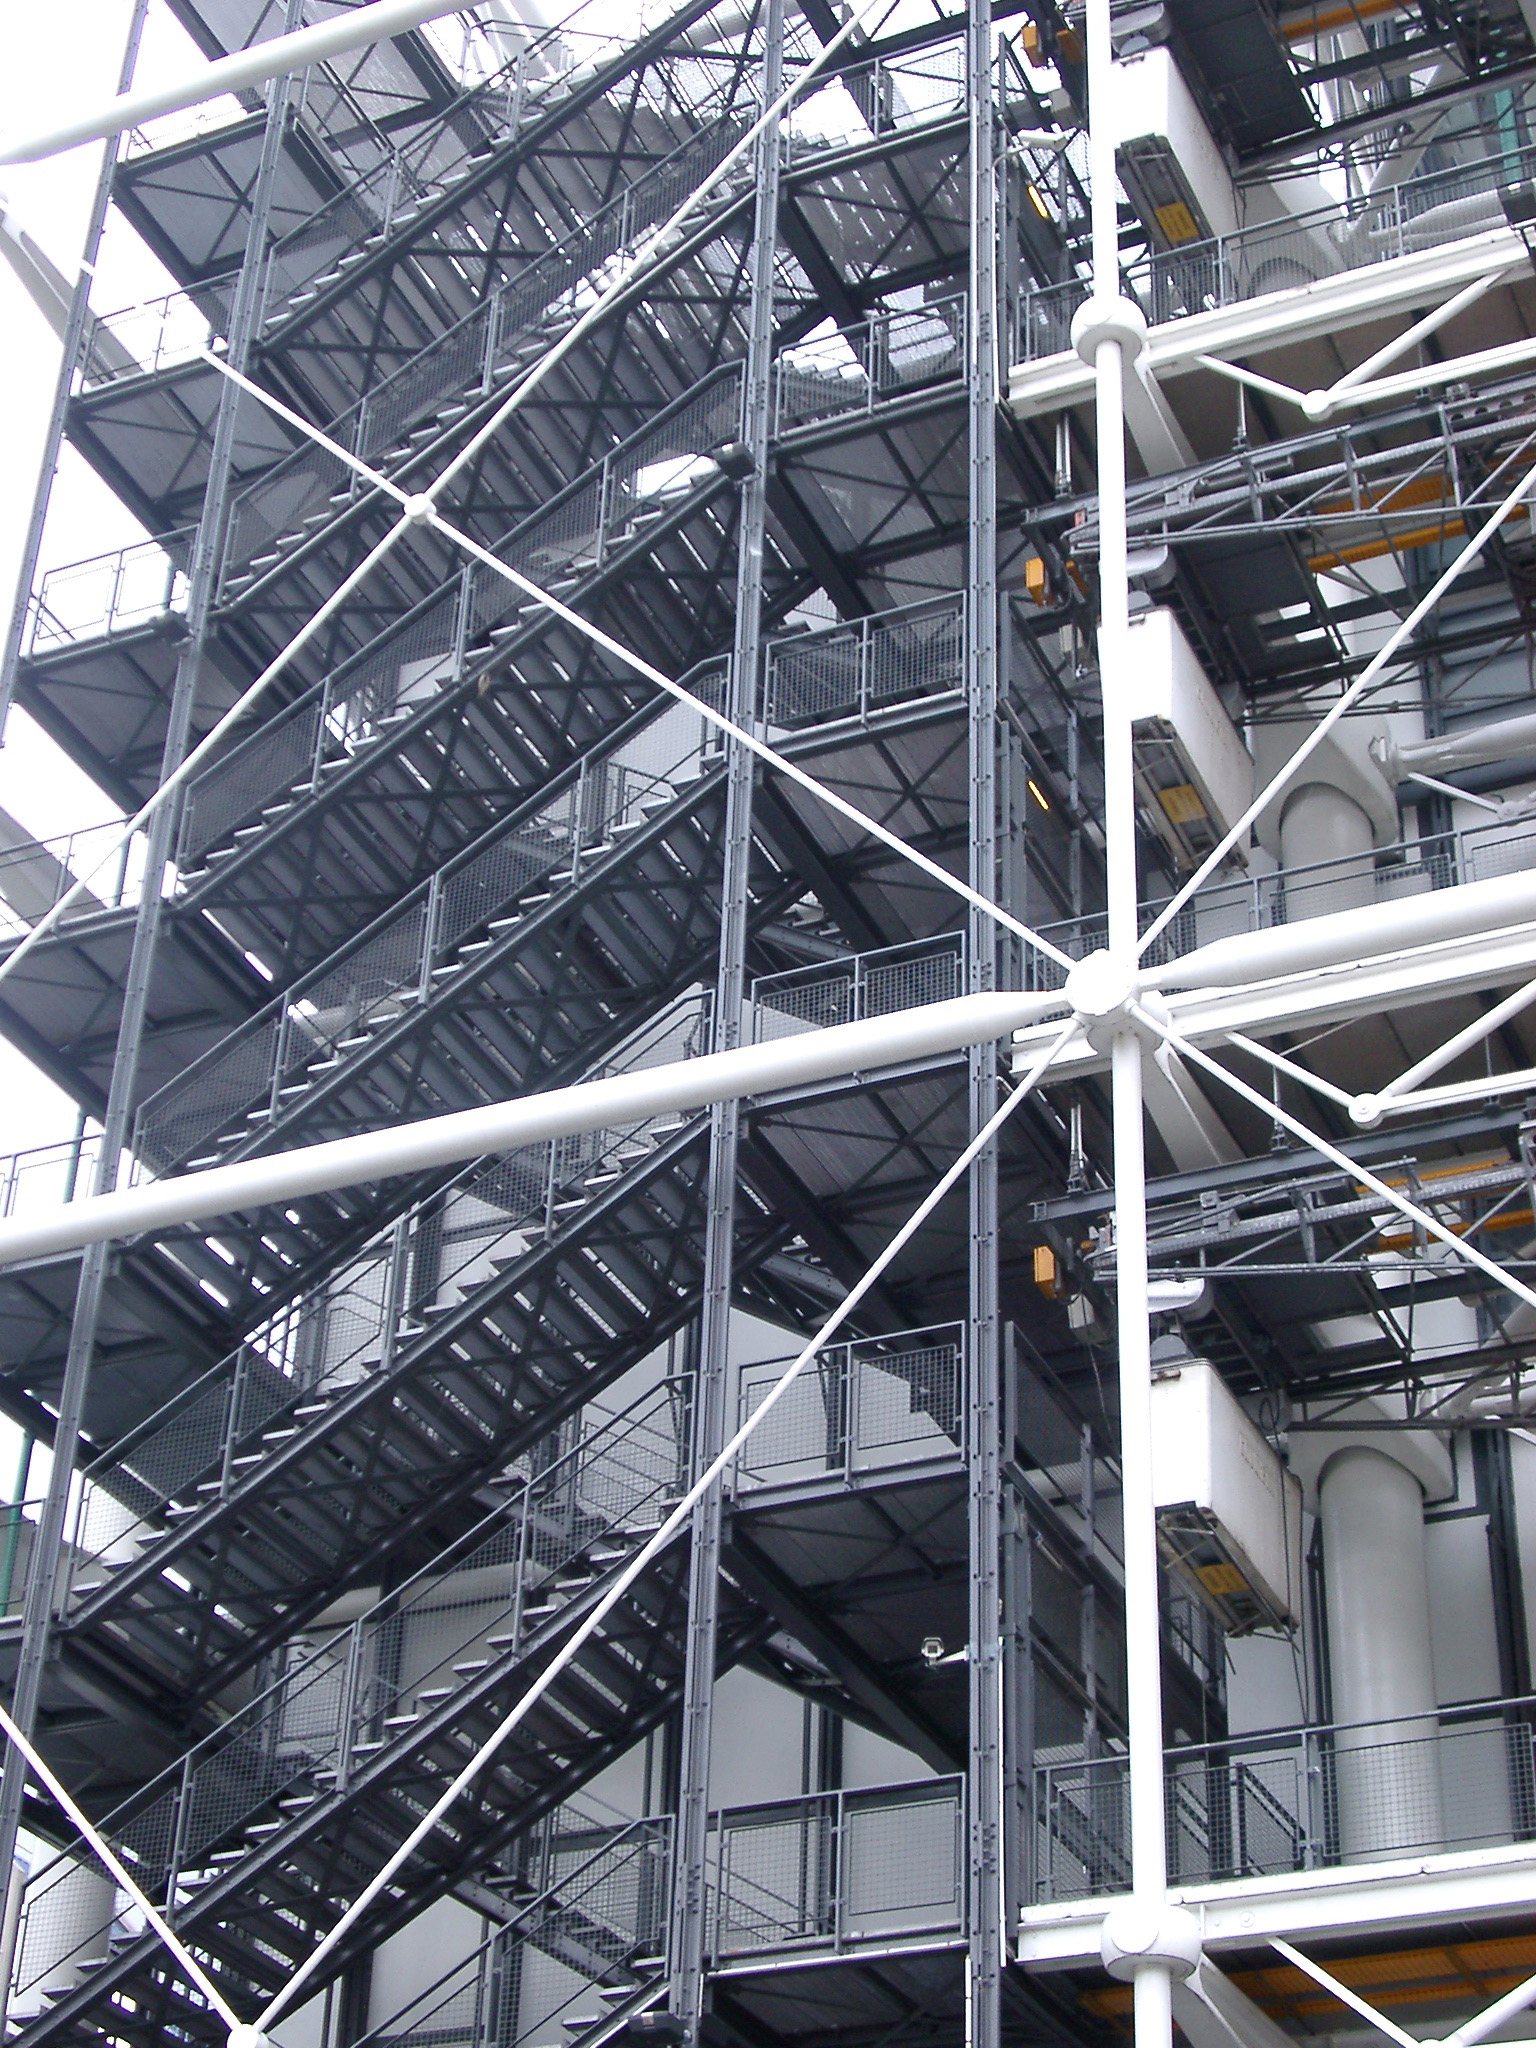 Exterior of the Georges Pompidou building showing a series of metal staircases or fire escapes on the modern glass facade